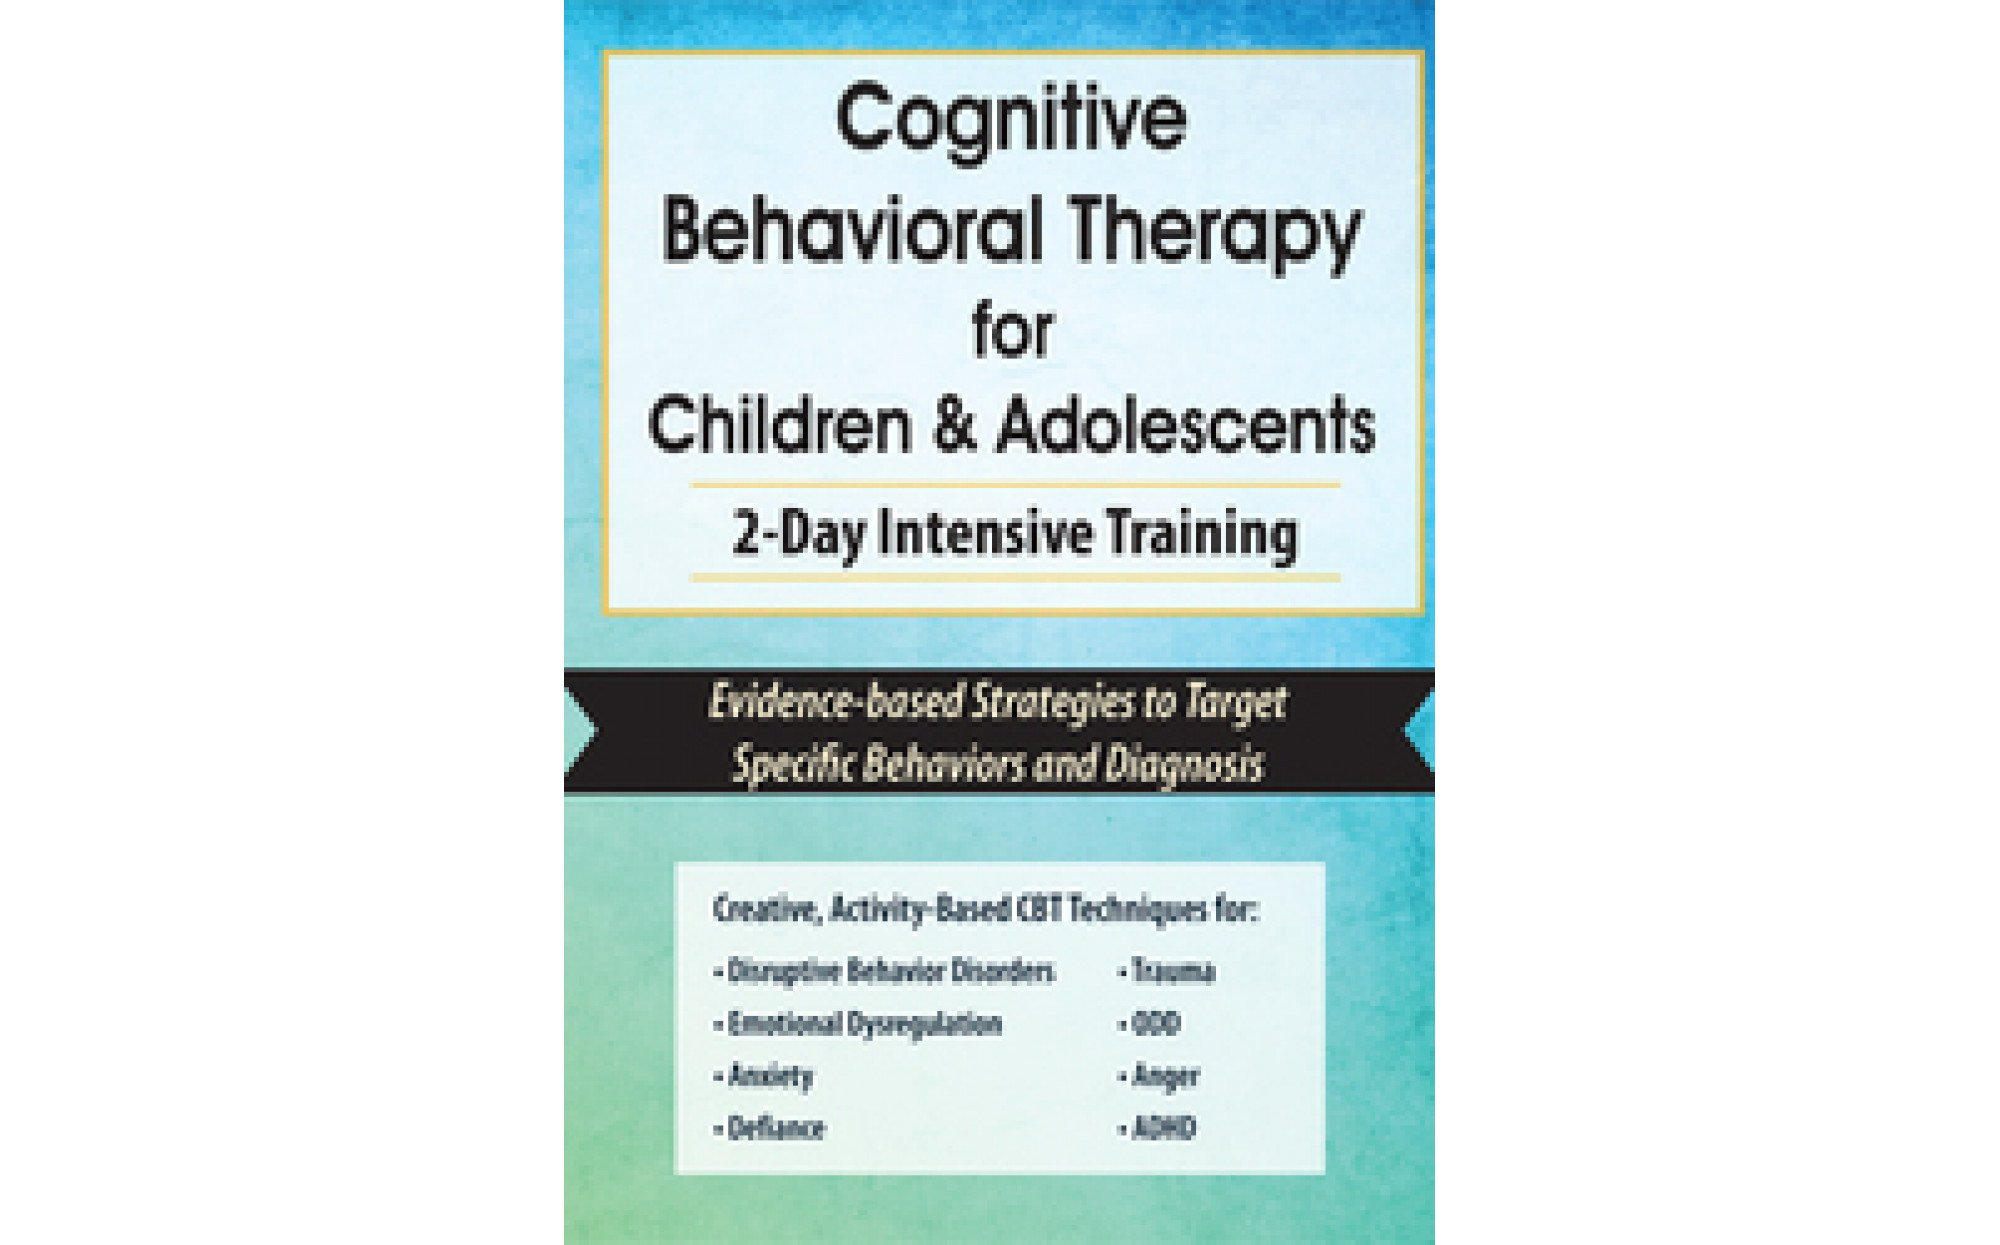 Intensive Cognitive Behavioral Therapy >> Cognitive Behavioral Therapy For Children Adolescents 2 Day